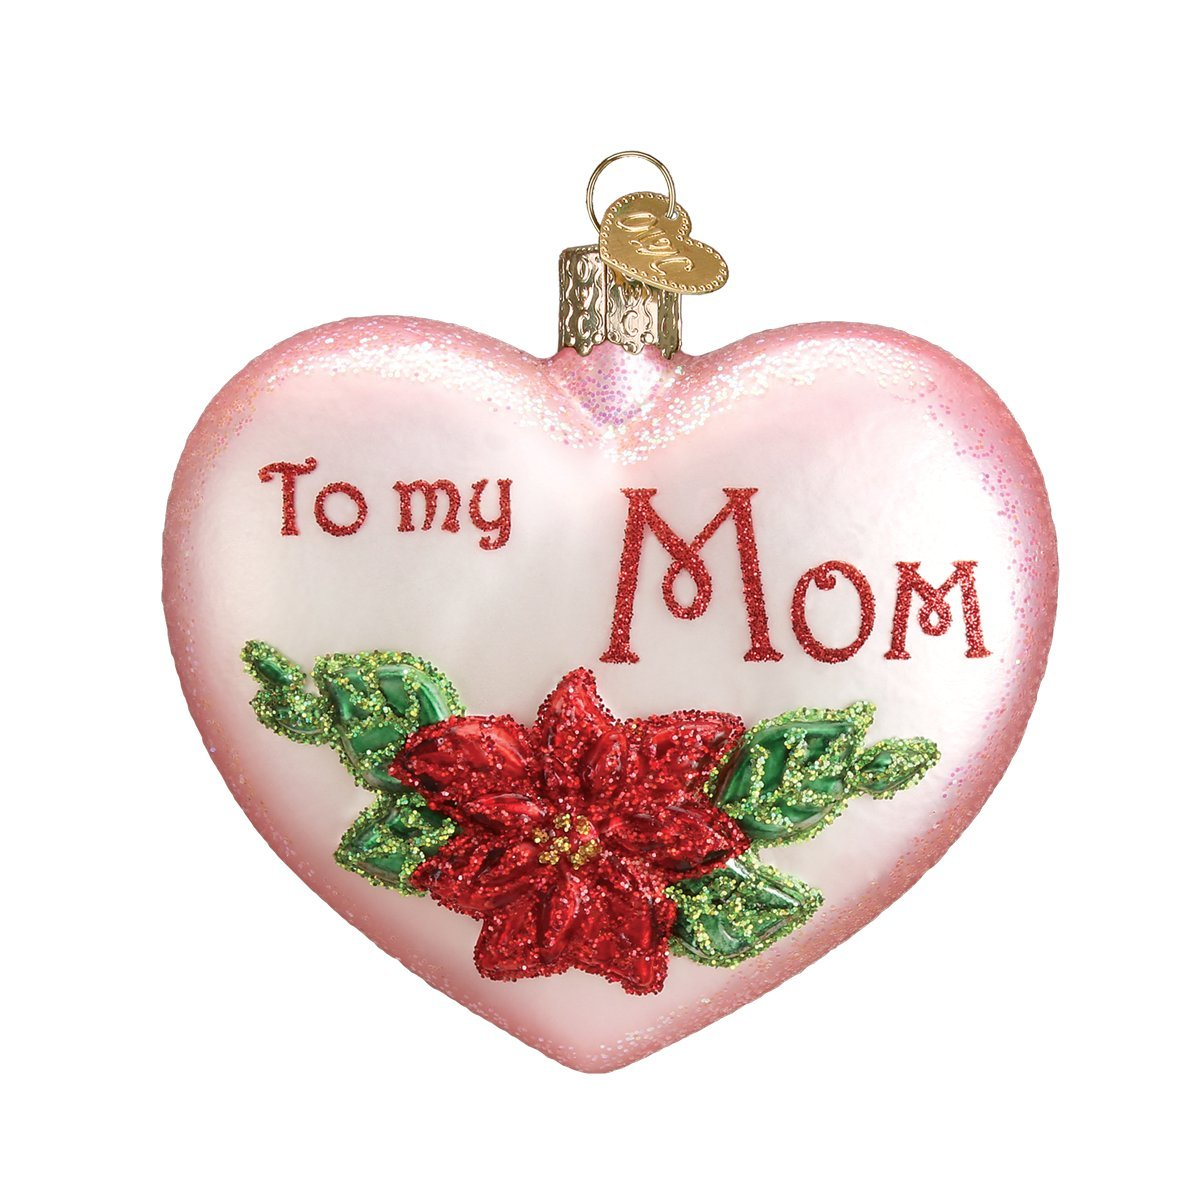 Old World Christmas Ornaments: Mom Heart Glass Blown Ornaments for Christmas Tree